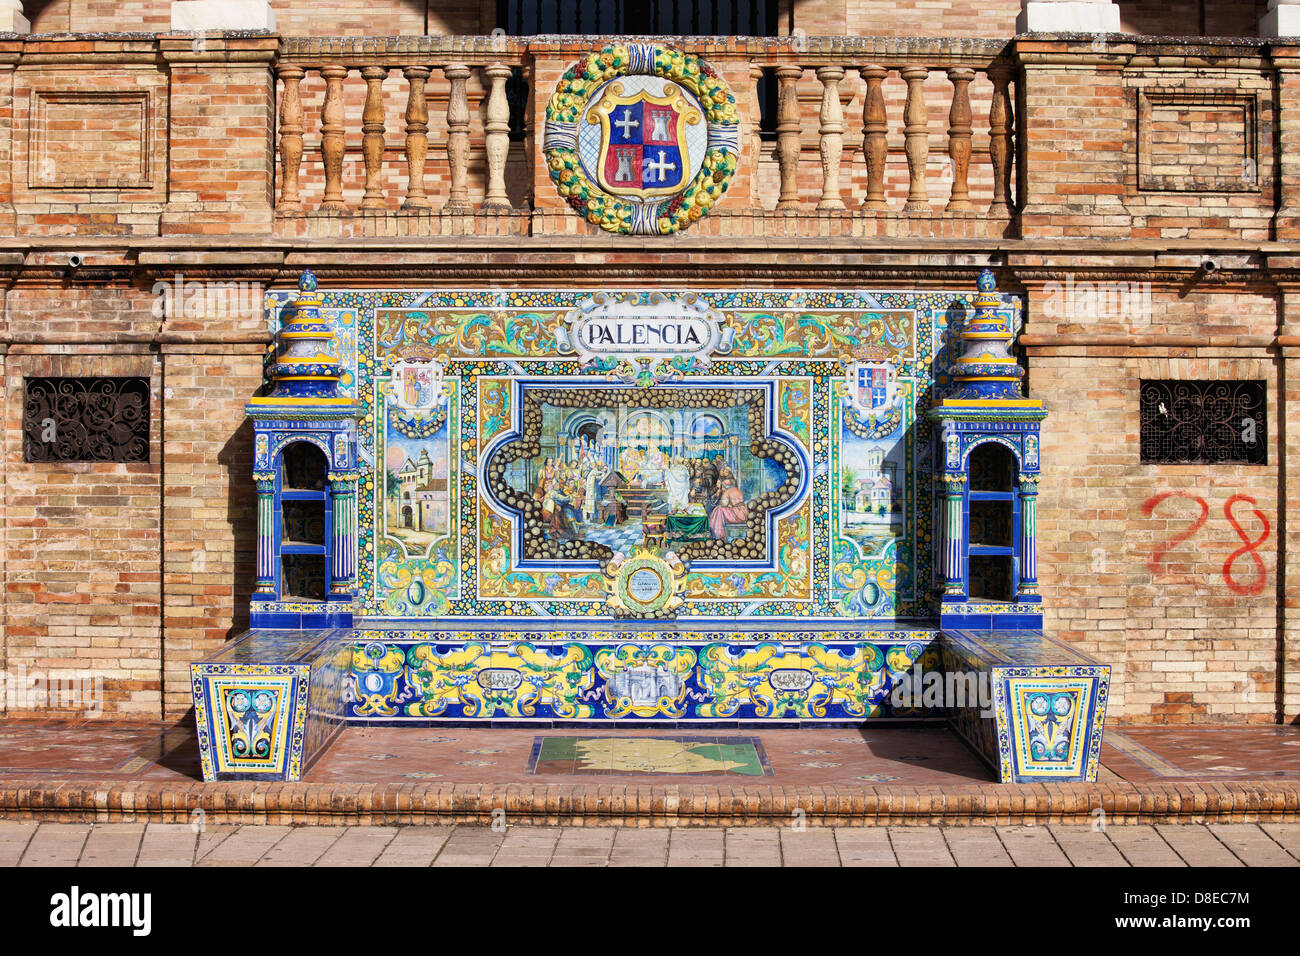 Bench with Azulejos Tiles on Plaza de Espana in Seville, Spain. - Stock Image